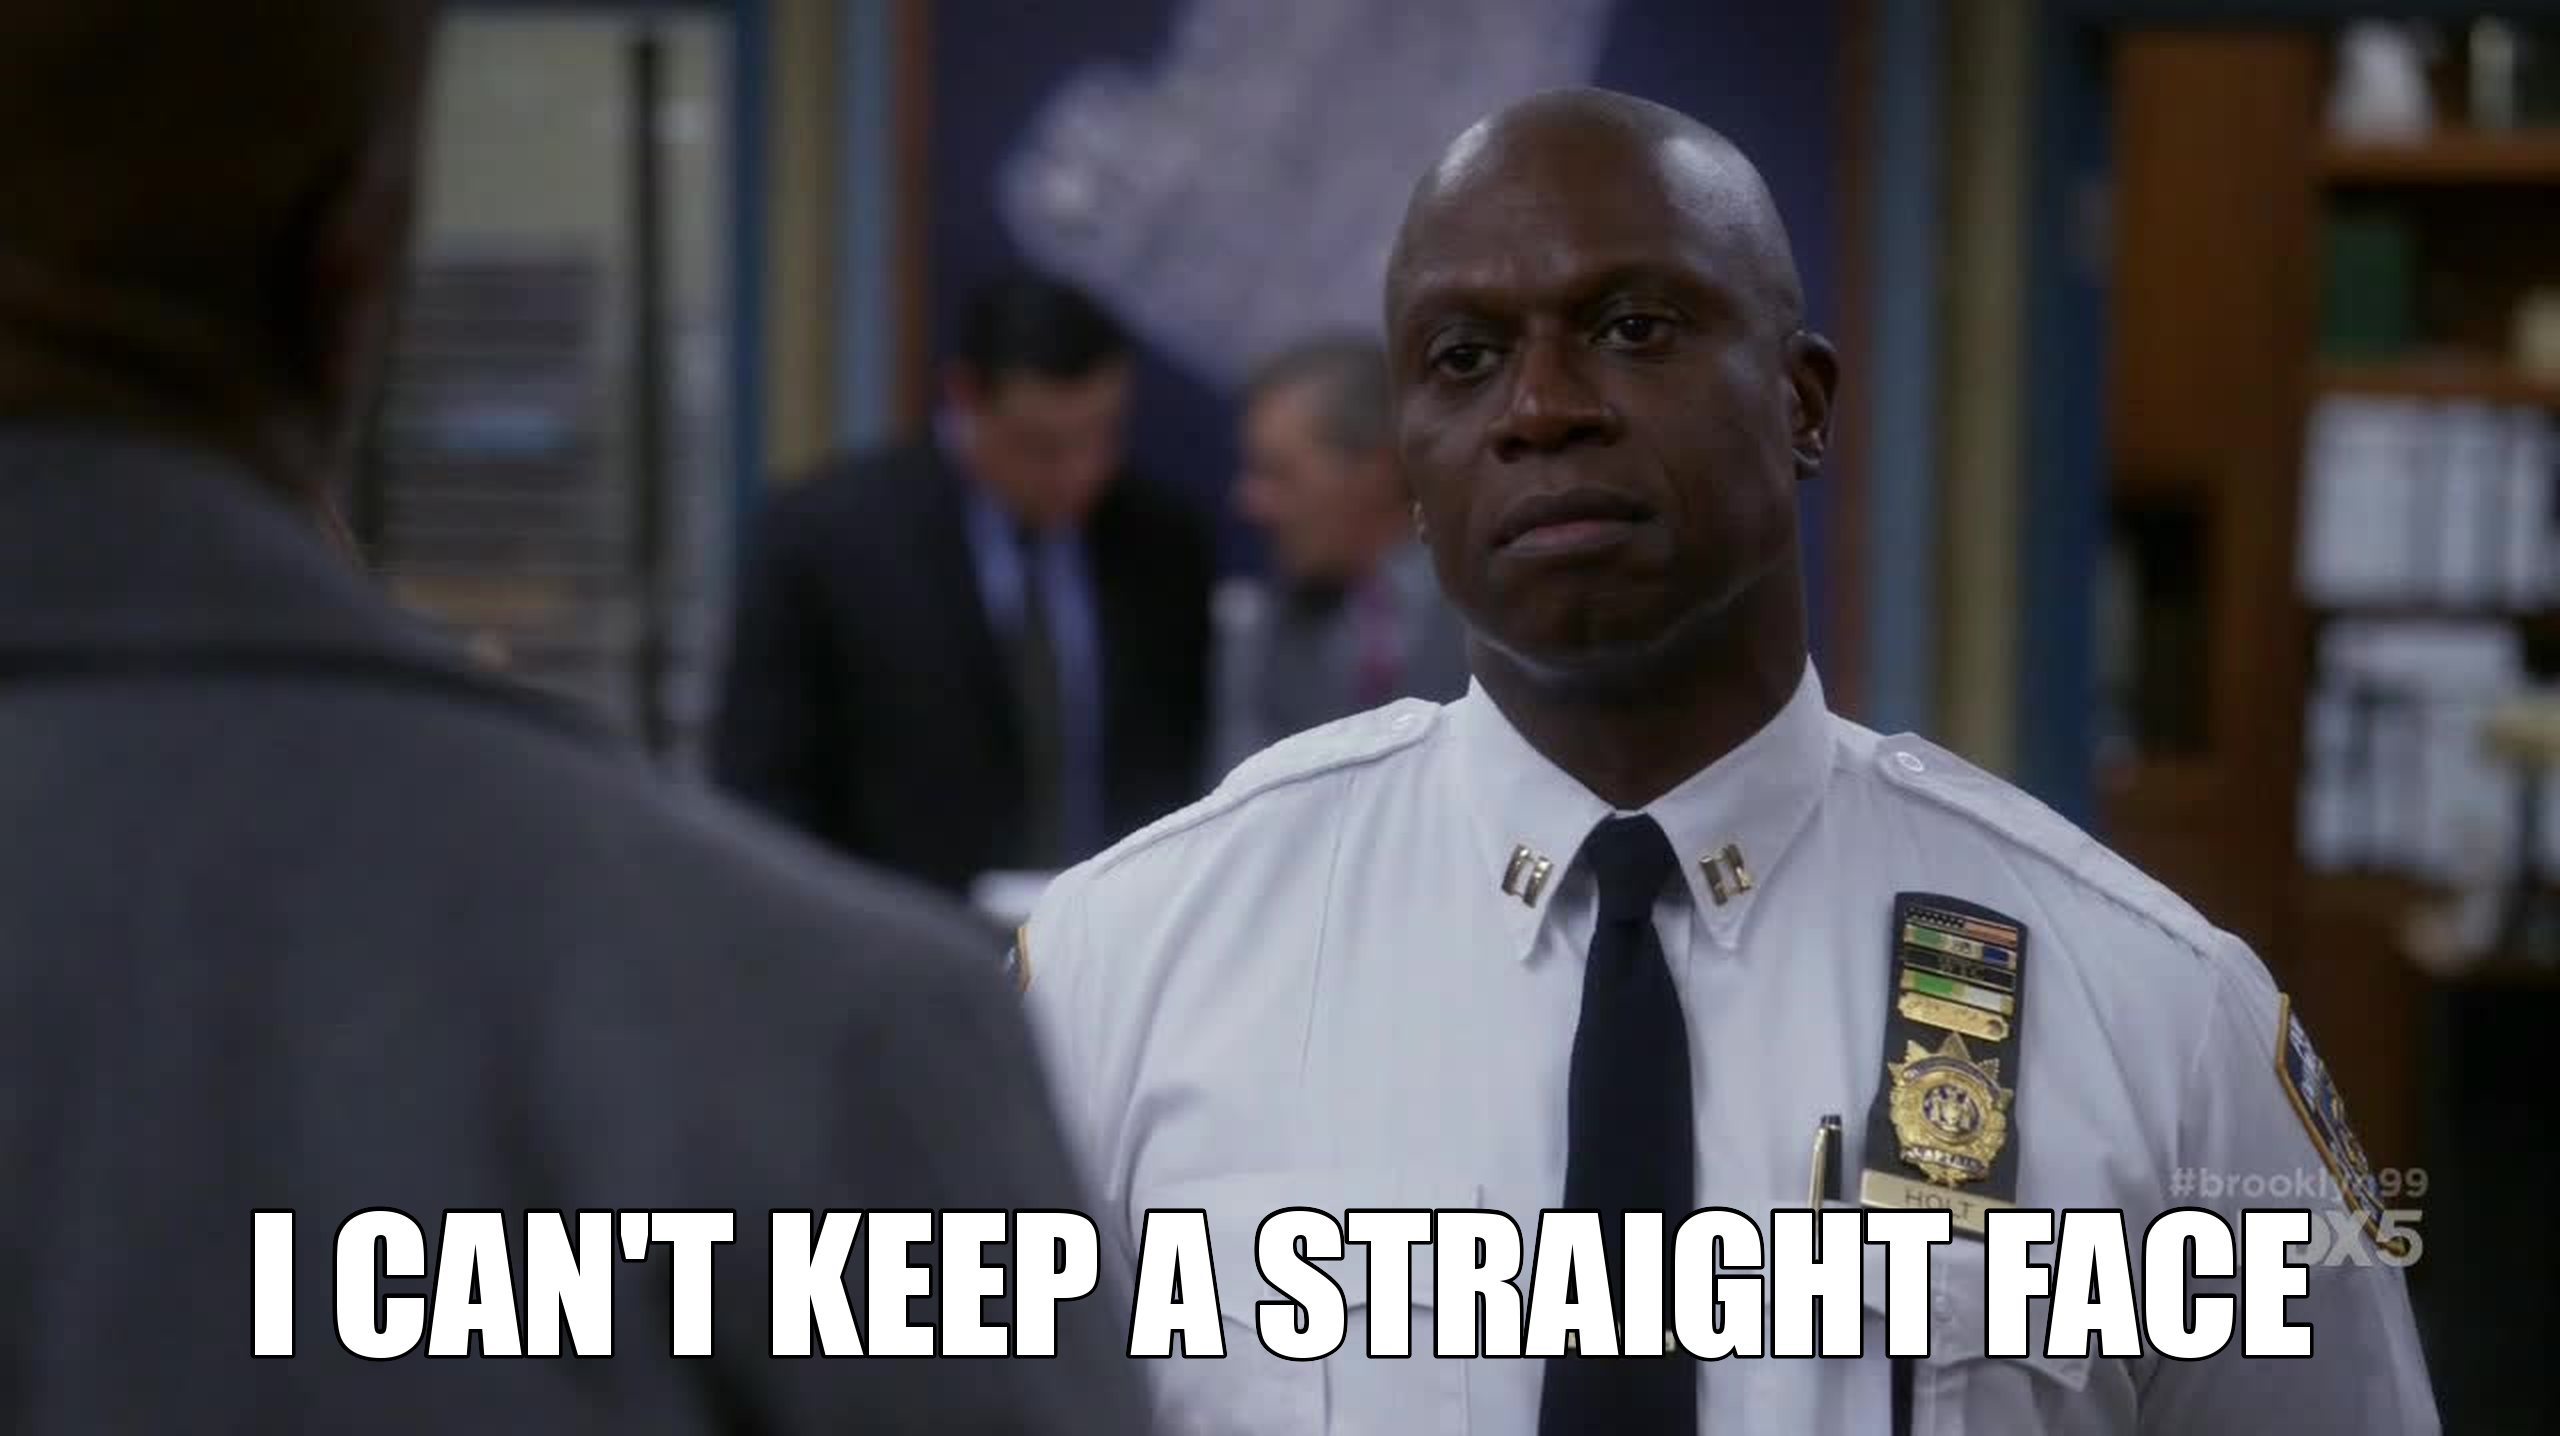 How come Andre Braugher never gets due credit for how hilarious he is?! This episode was great!